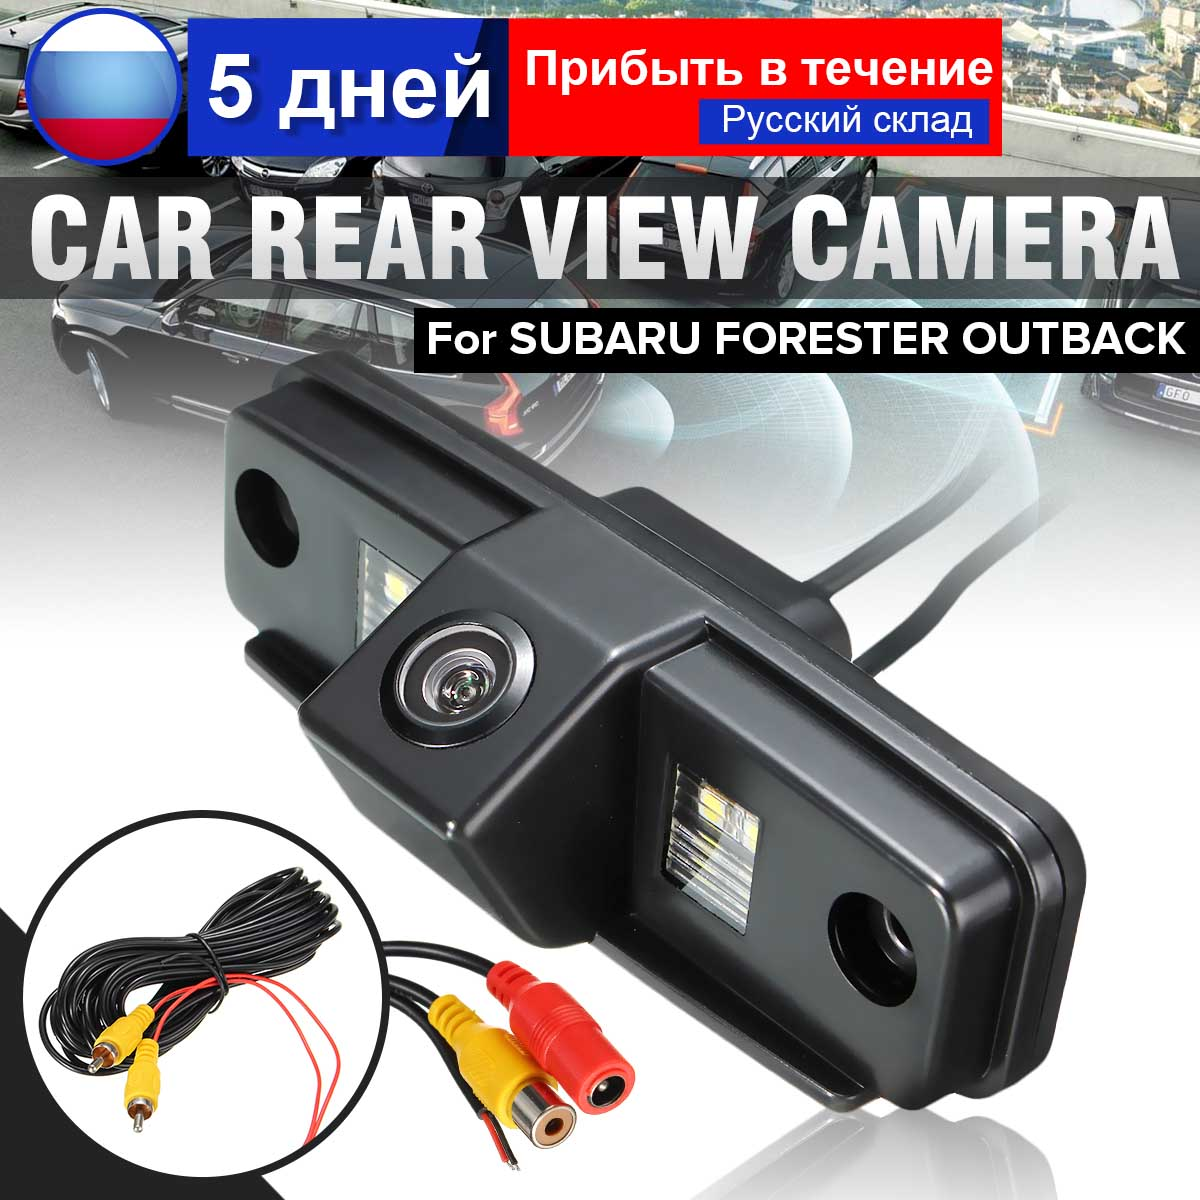 Car CCD Night Vision Backup Rear View Camera Parking Reverse Cameras For Subaru Forester Outback 2007-2012 Sedan Tribeca Impreza